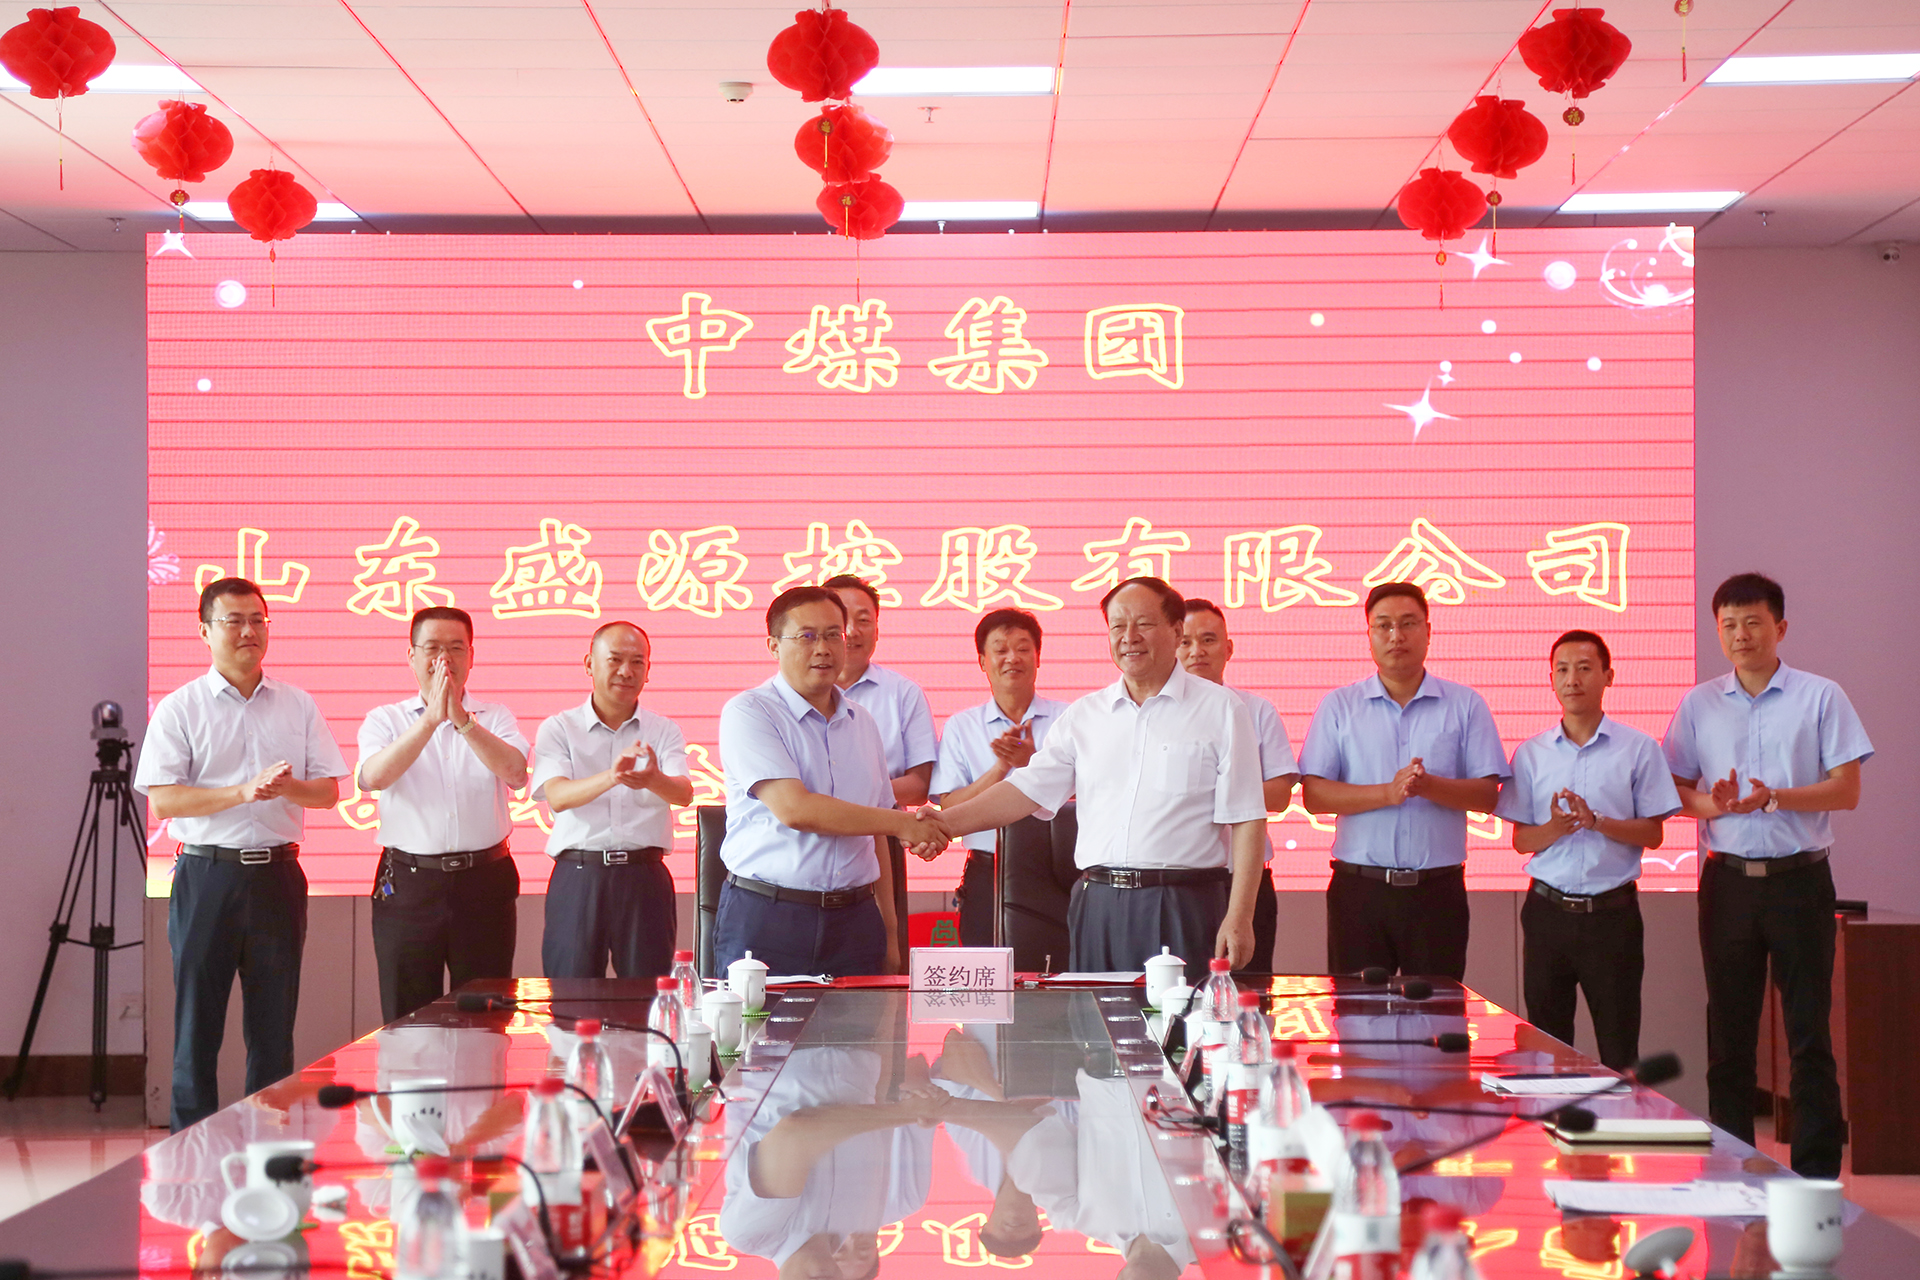 China Coal Group And Shandong Shengyuan Holding Co., Ltd. Hold A Strategic Cooperation Signing Ceremony